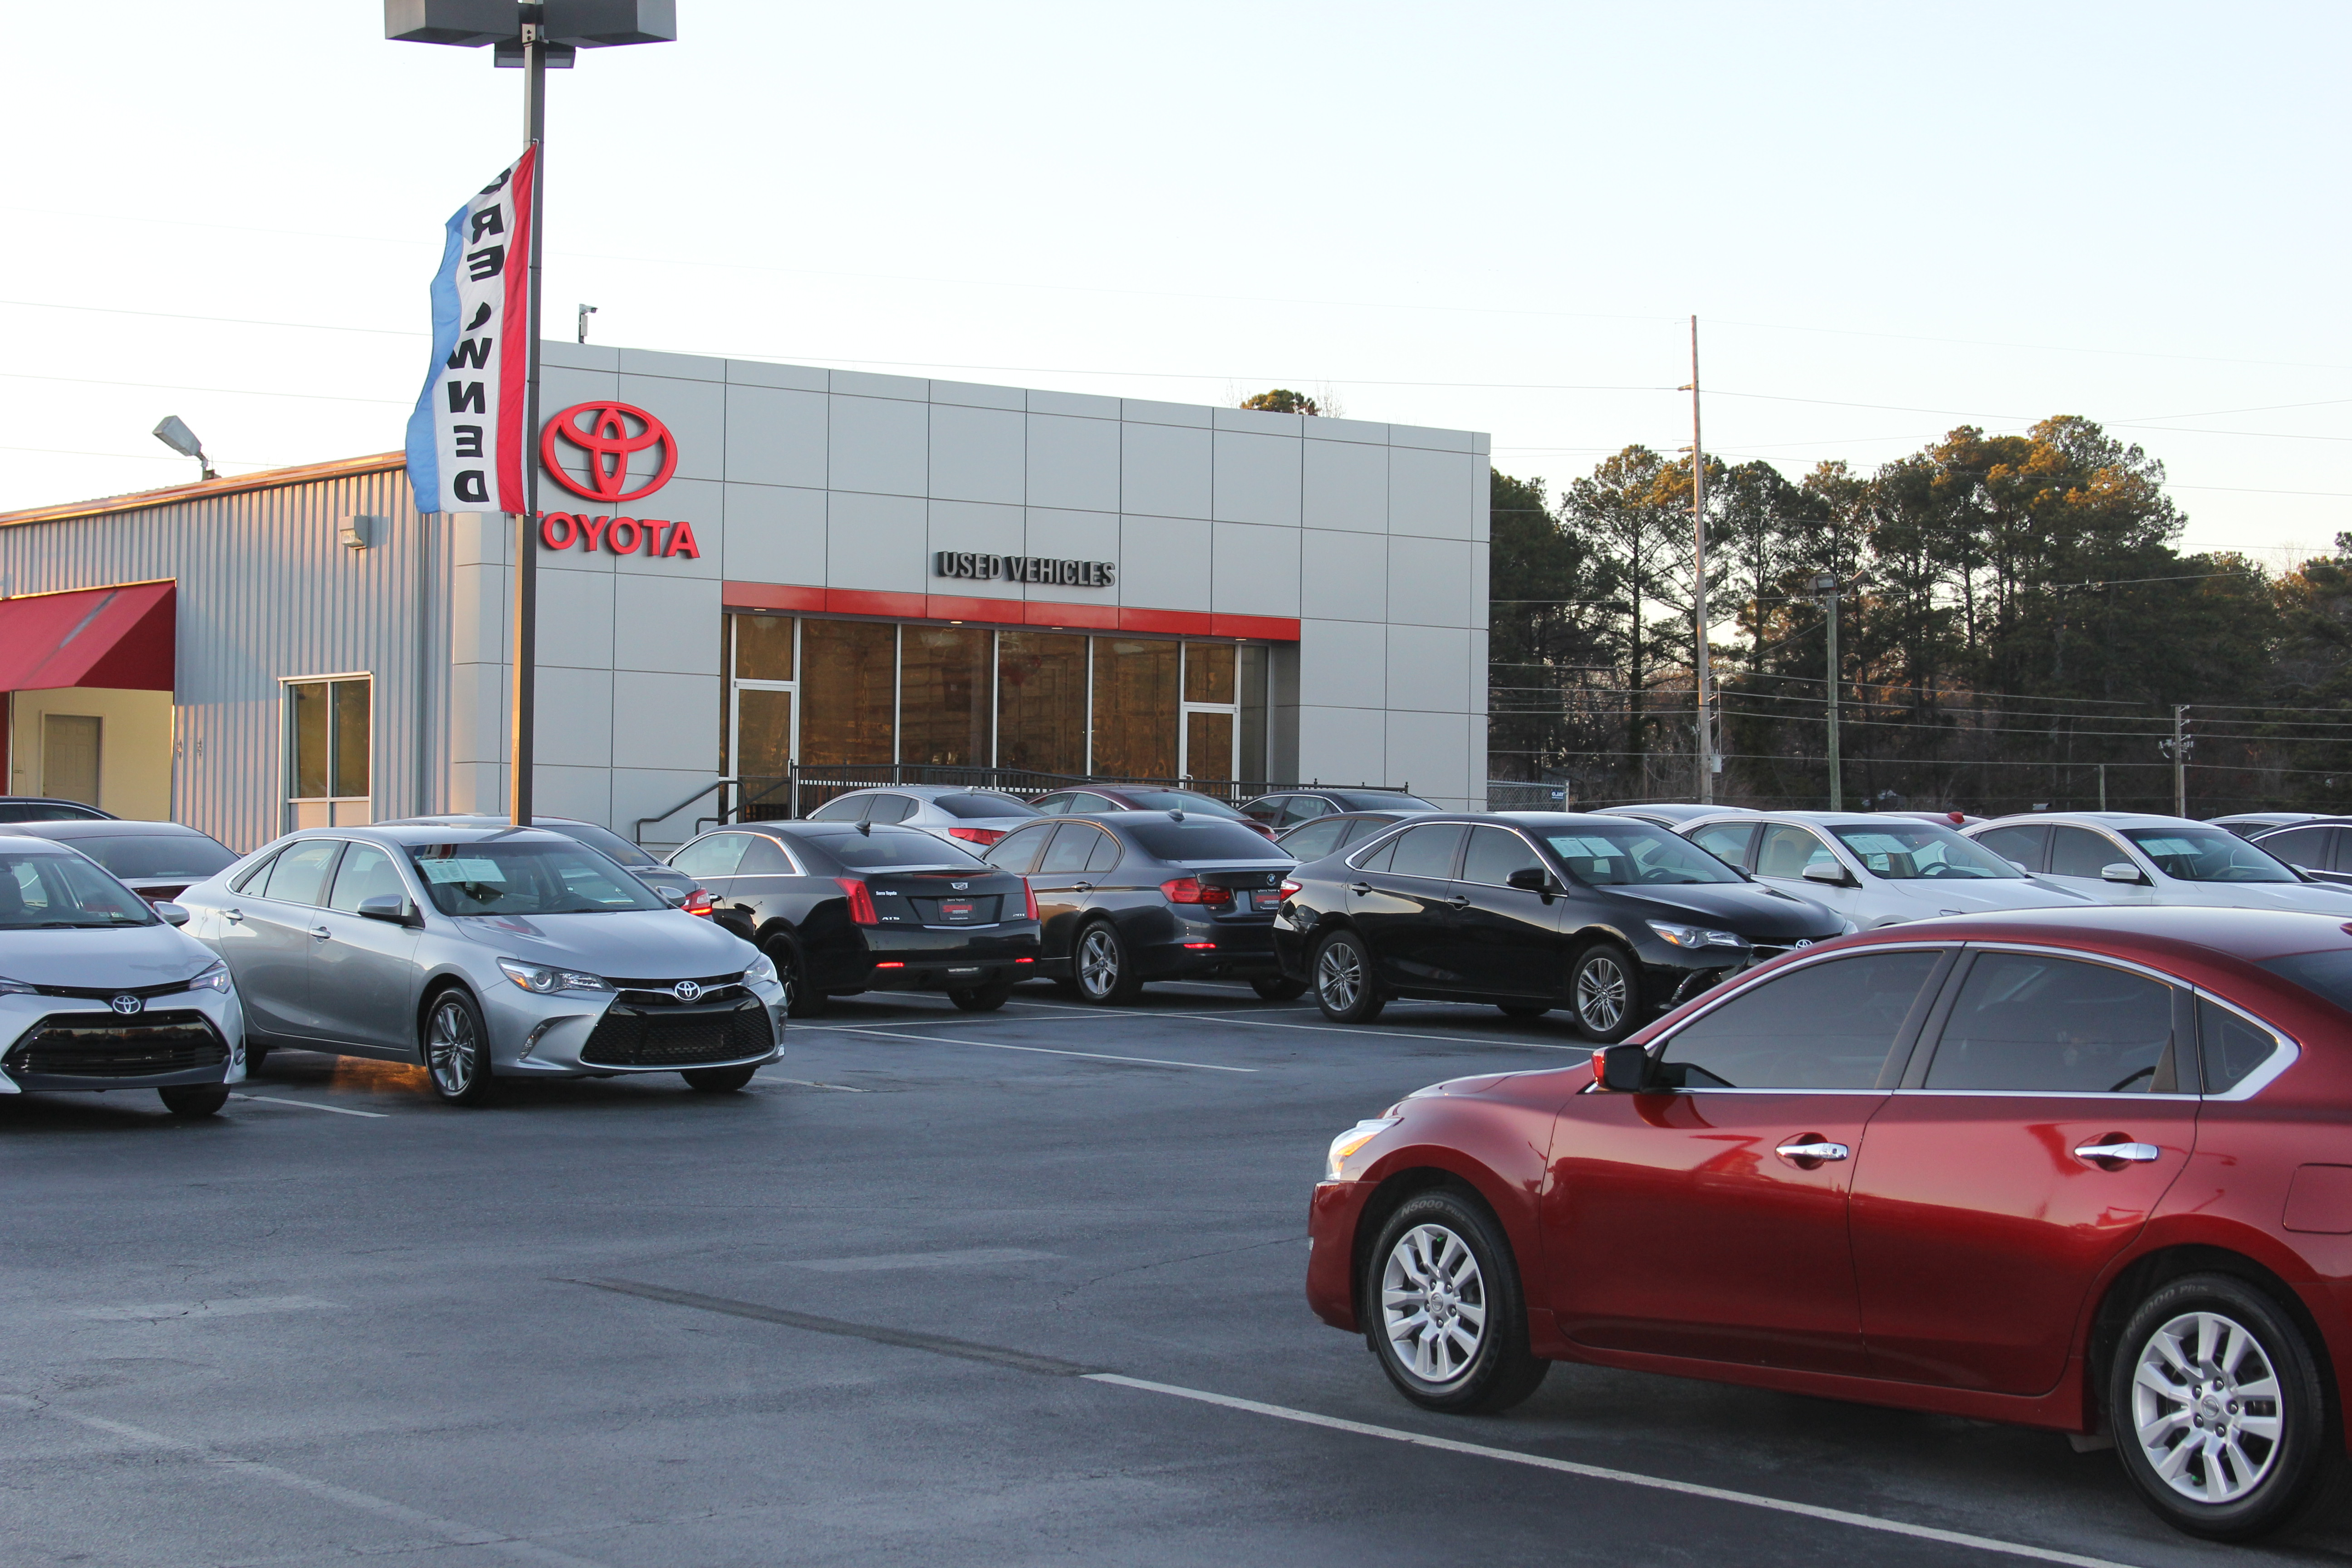 Discover Serra Kia of Trussville, You Might Be Surprised